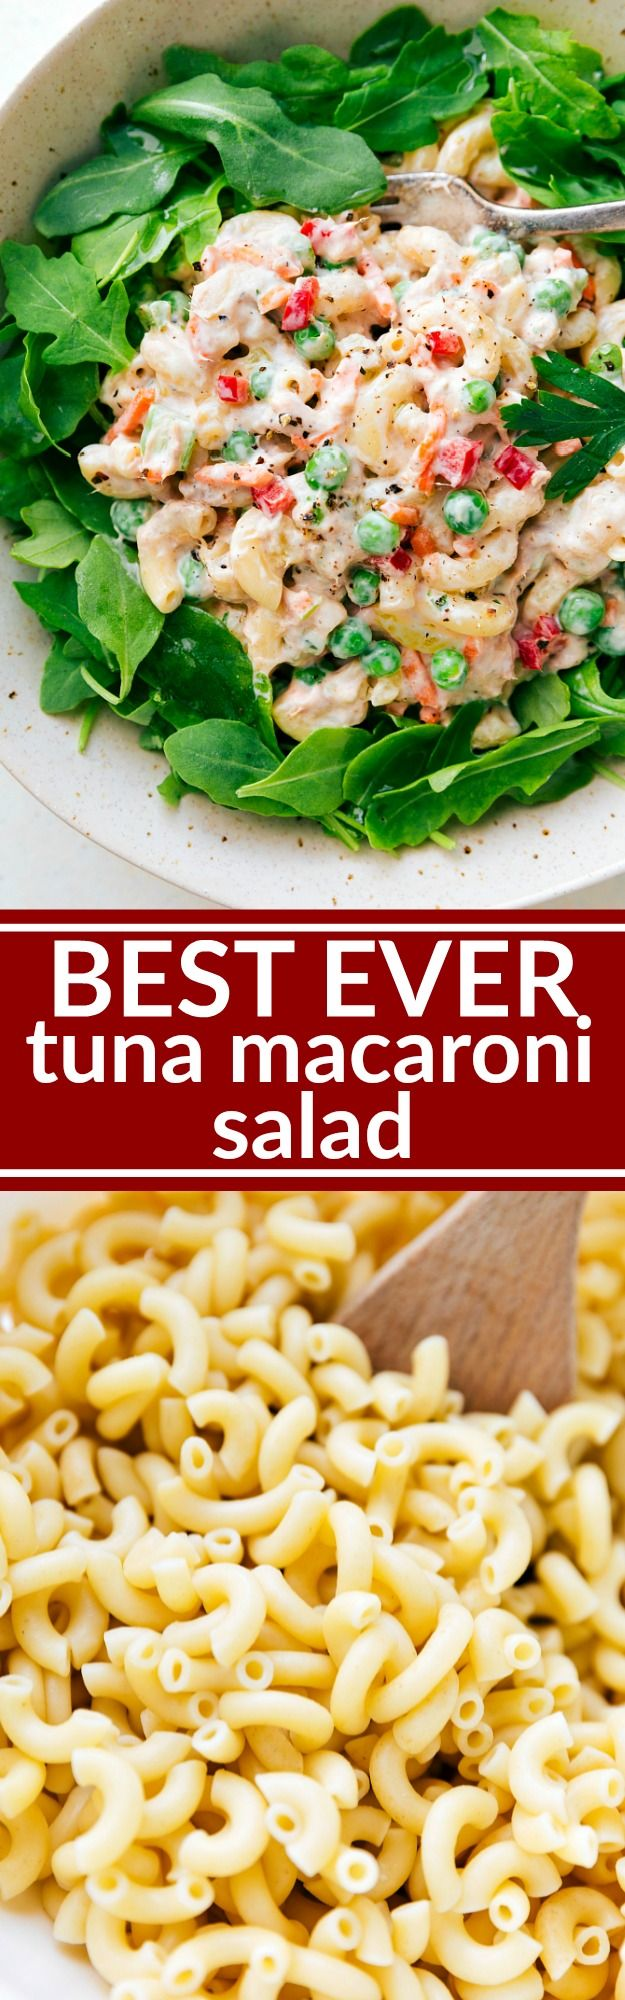 Best Tuna Salad on Pinterest | Best Tuna Salad Recipe, Tuna Salad